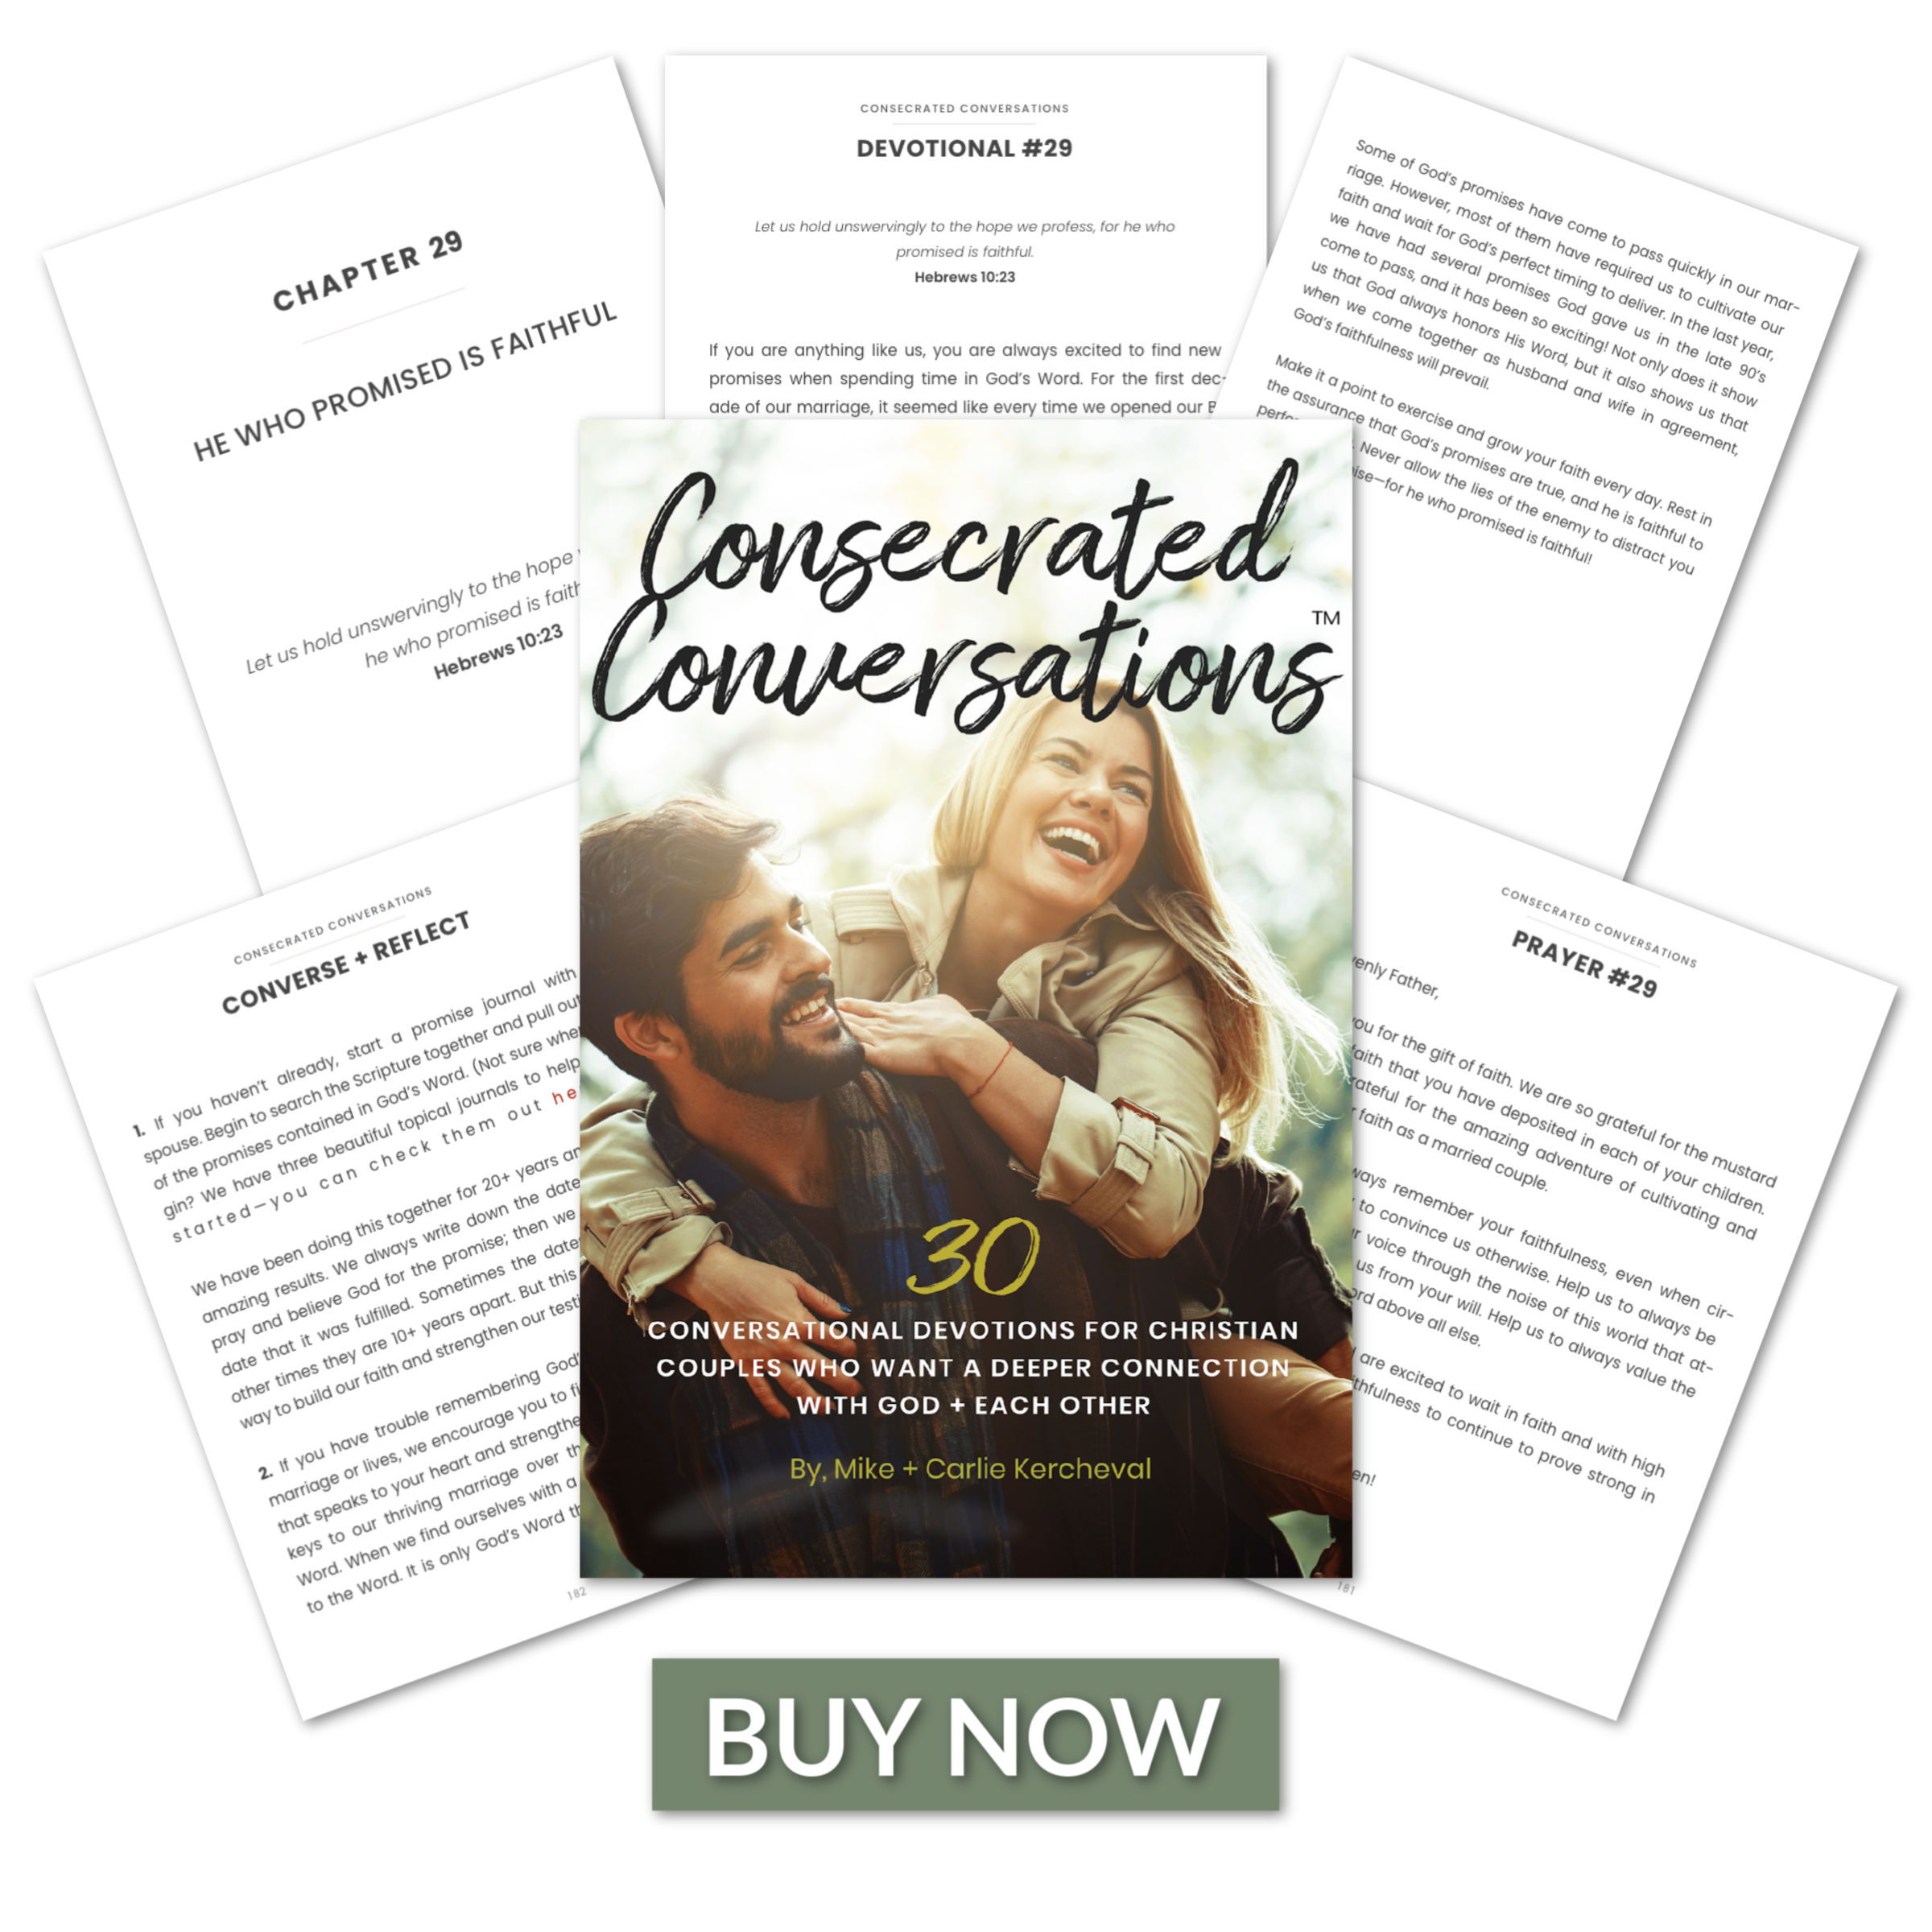 Looking to have a closer relationship with God and your spouse? Consecrated Conversations can help!